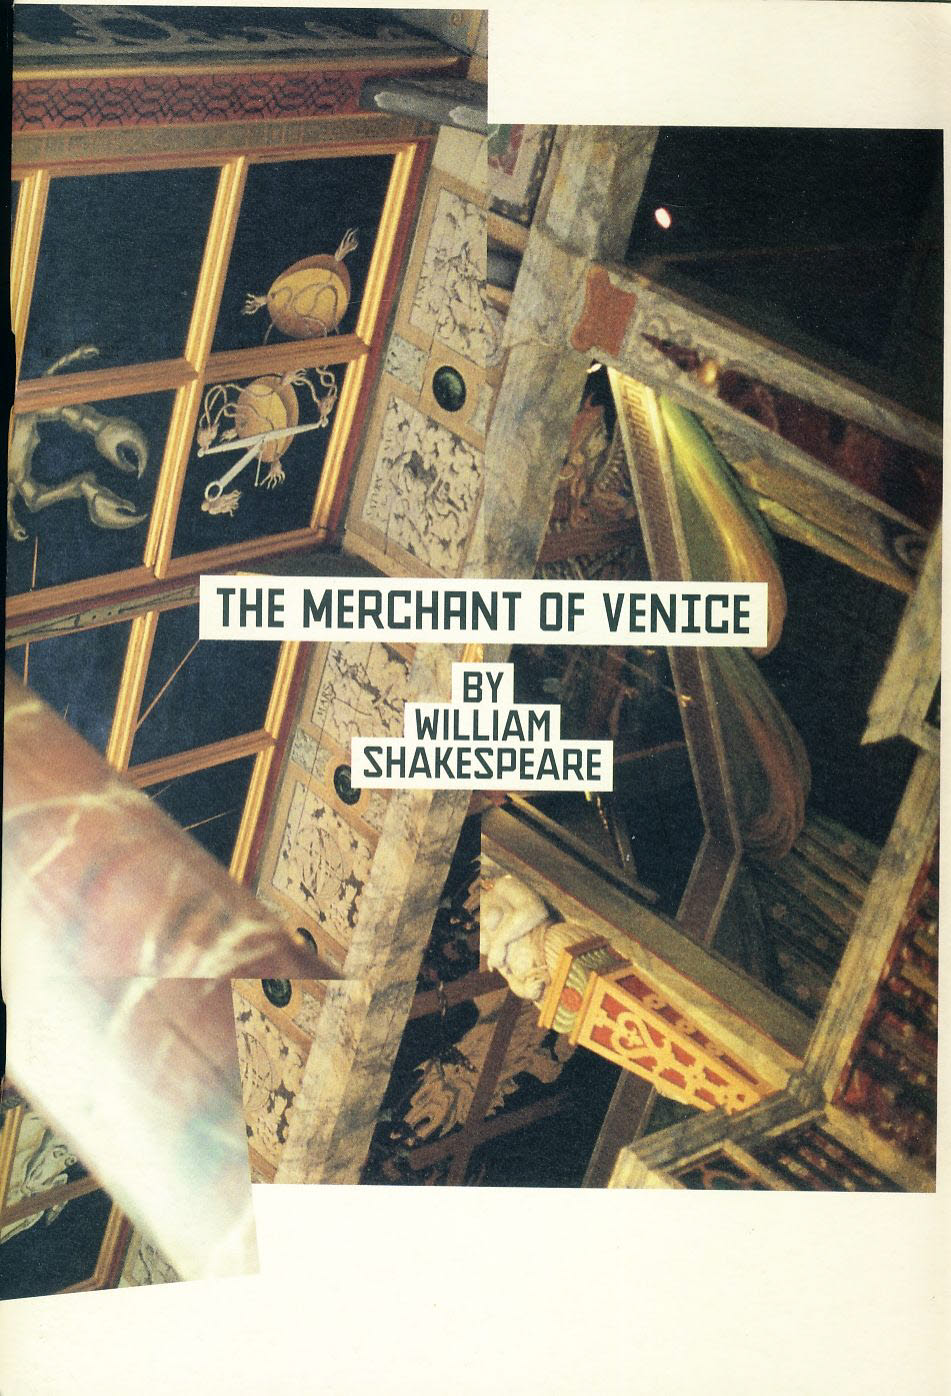 The Merchant of Venice by Wm Shakespeare 2007 GLOBE theatre Programme refb100821 Good Condition. Measure approx 16.5cm x 24cm